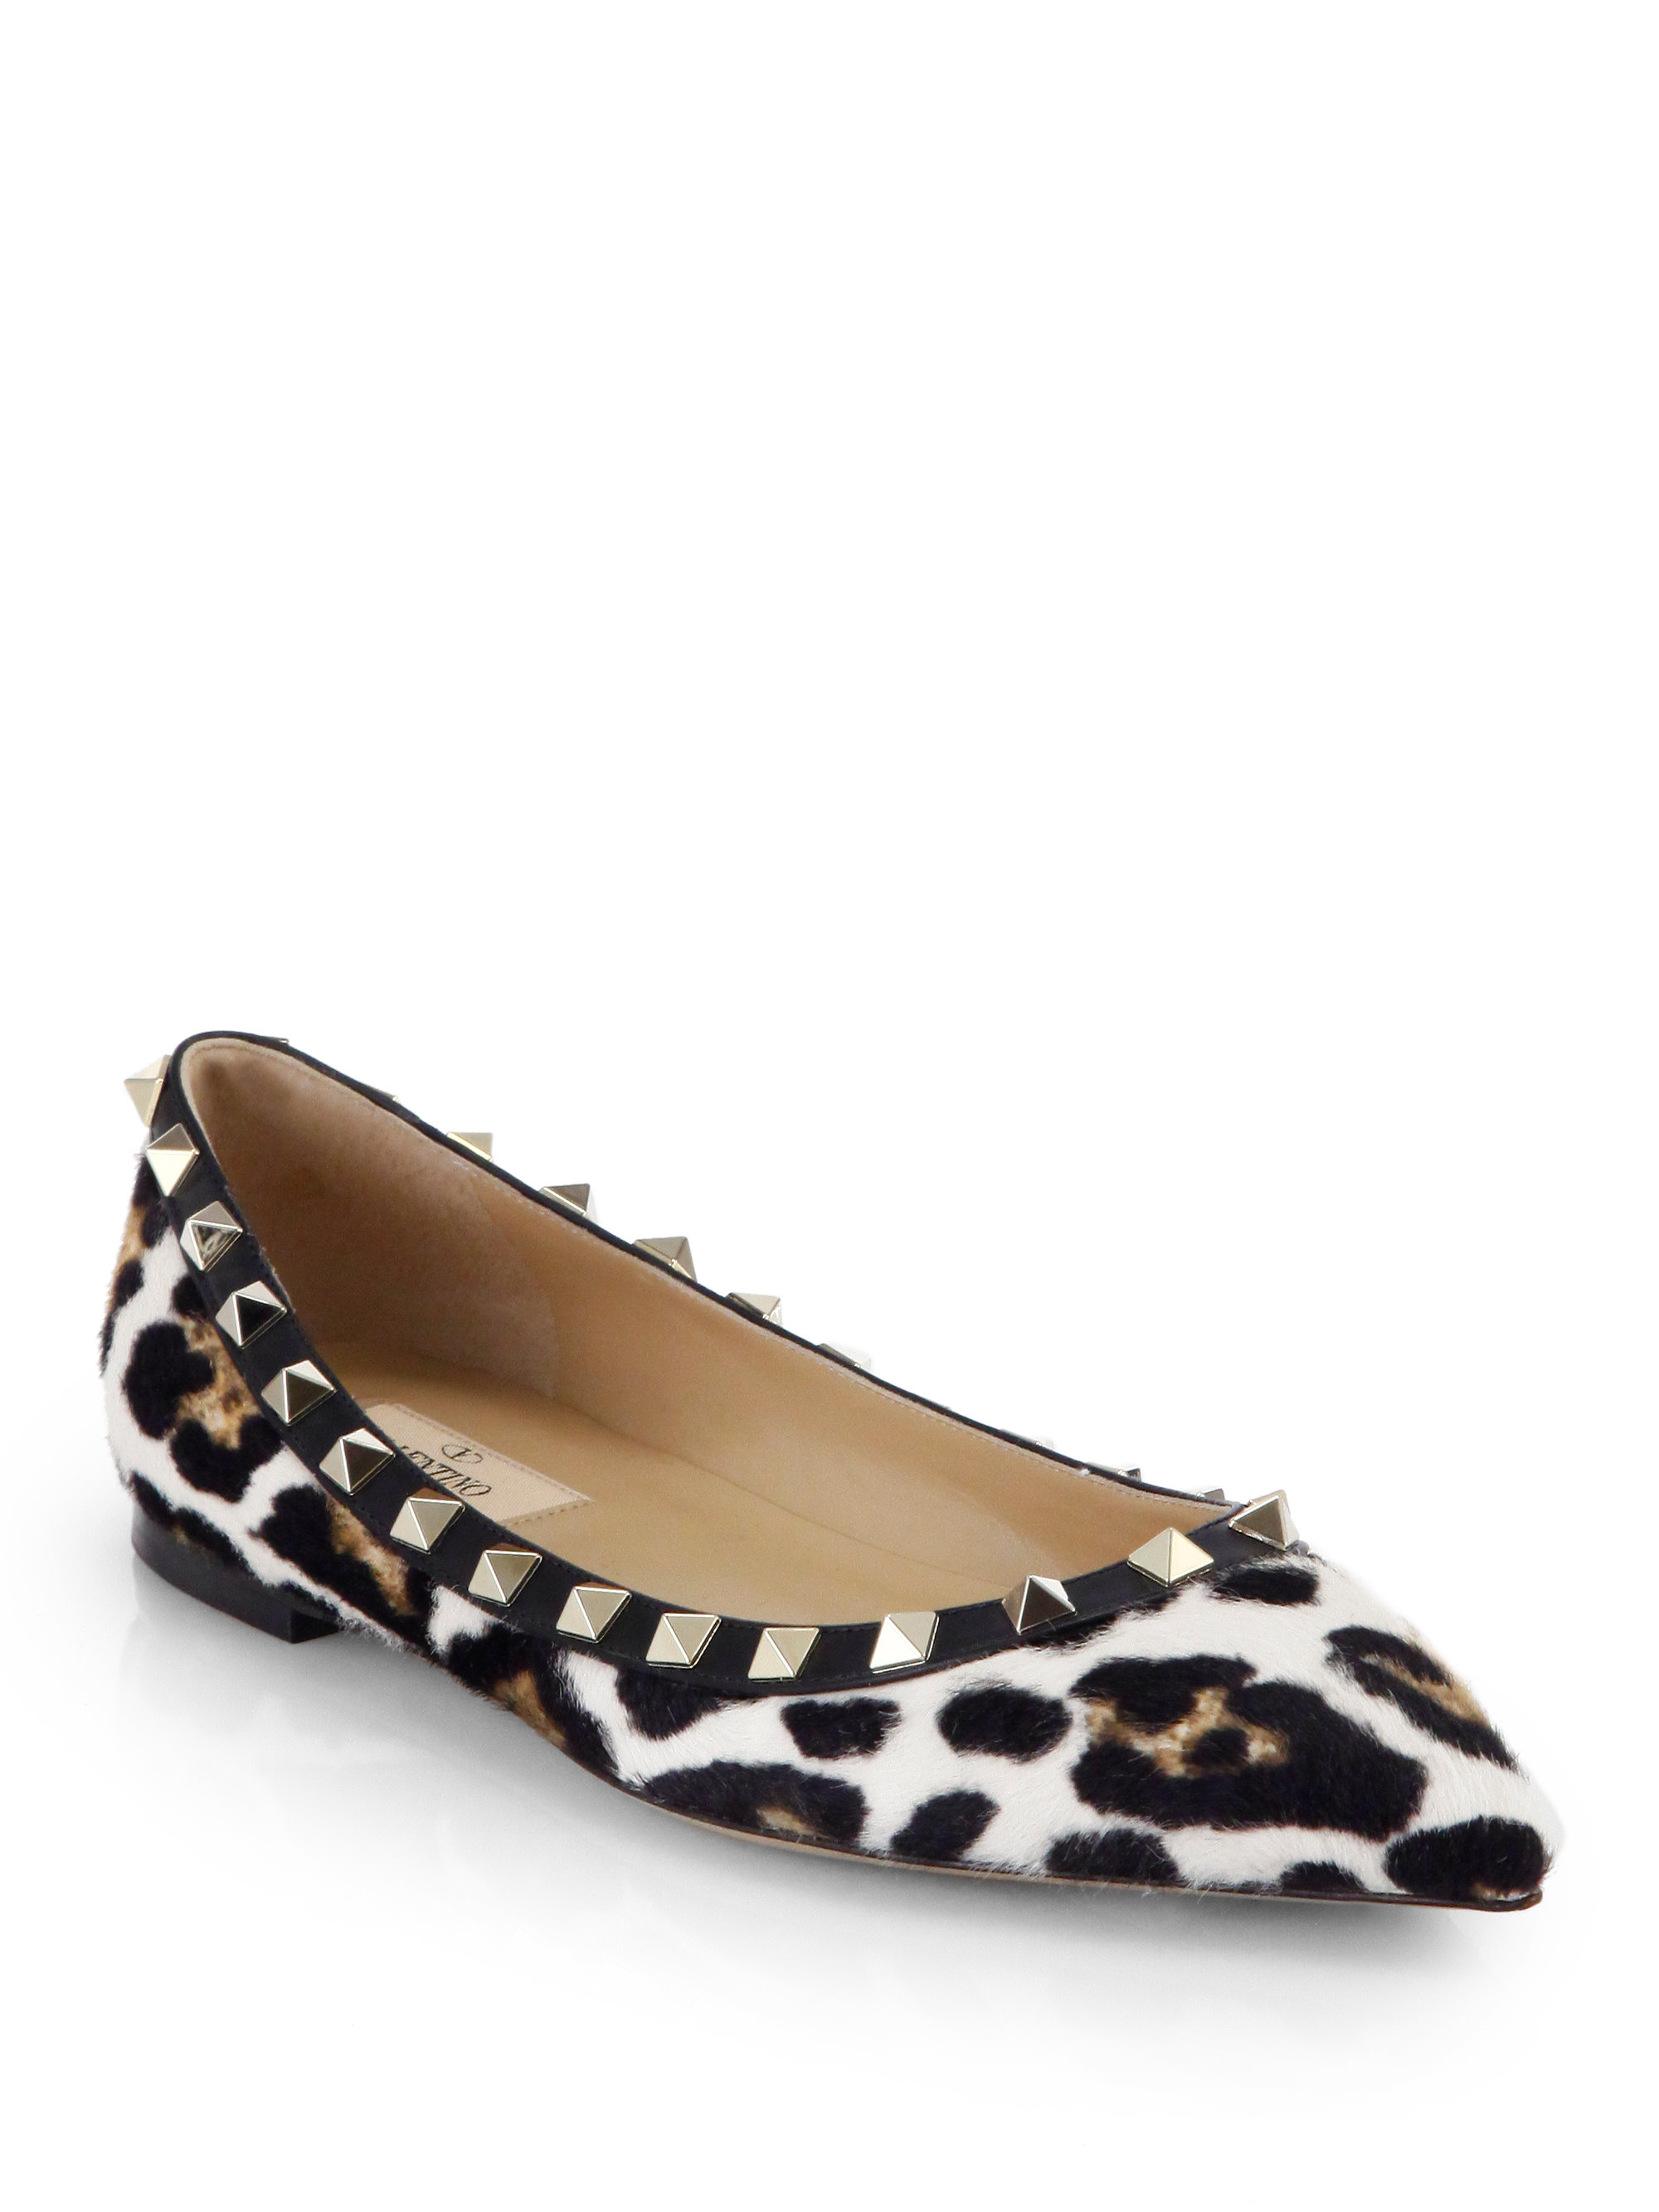 This dainty bowed beauty rounds up the top three on our list of the most comfortable ballet flats for travel, beautifully combining fashion and function, especially for business trips. For a lovely neutral Leopard Print, try the F-Pop Ballerina Leather Flat. This .